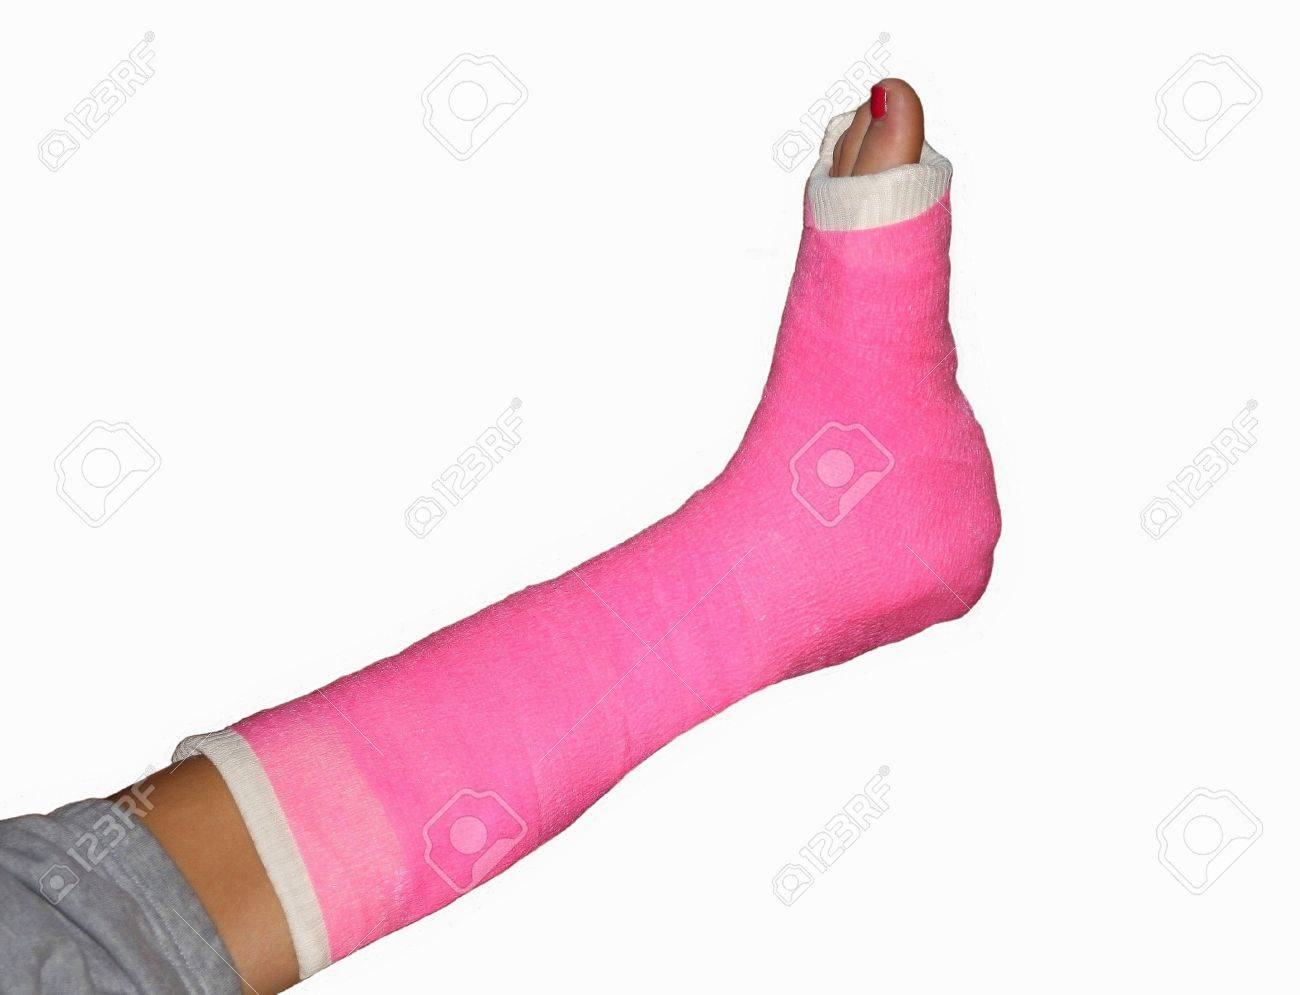 Broken leg with pink bandage and painted toenail Stock Photo - 13373702